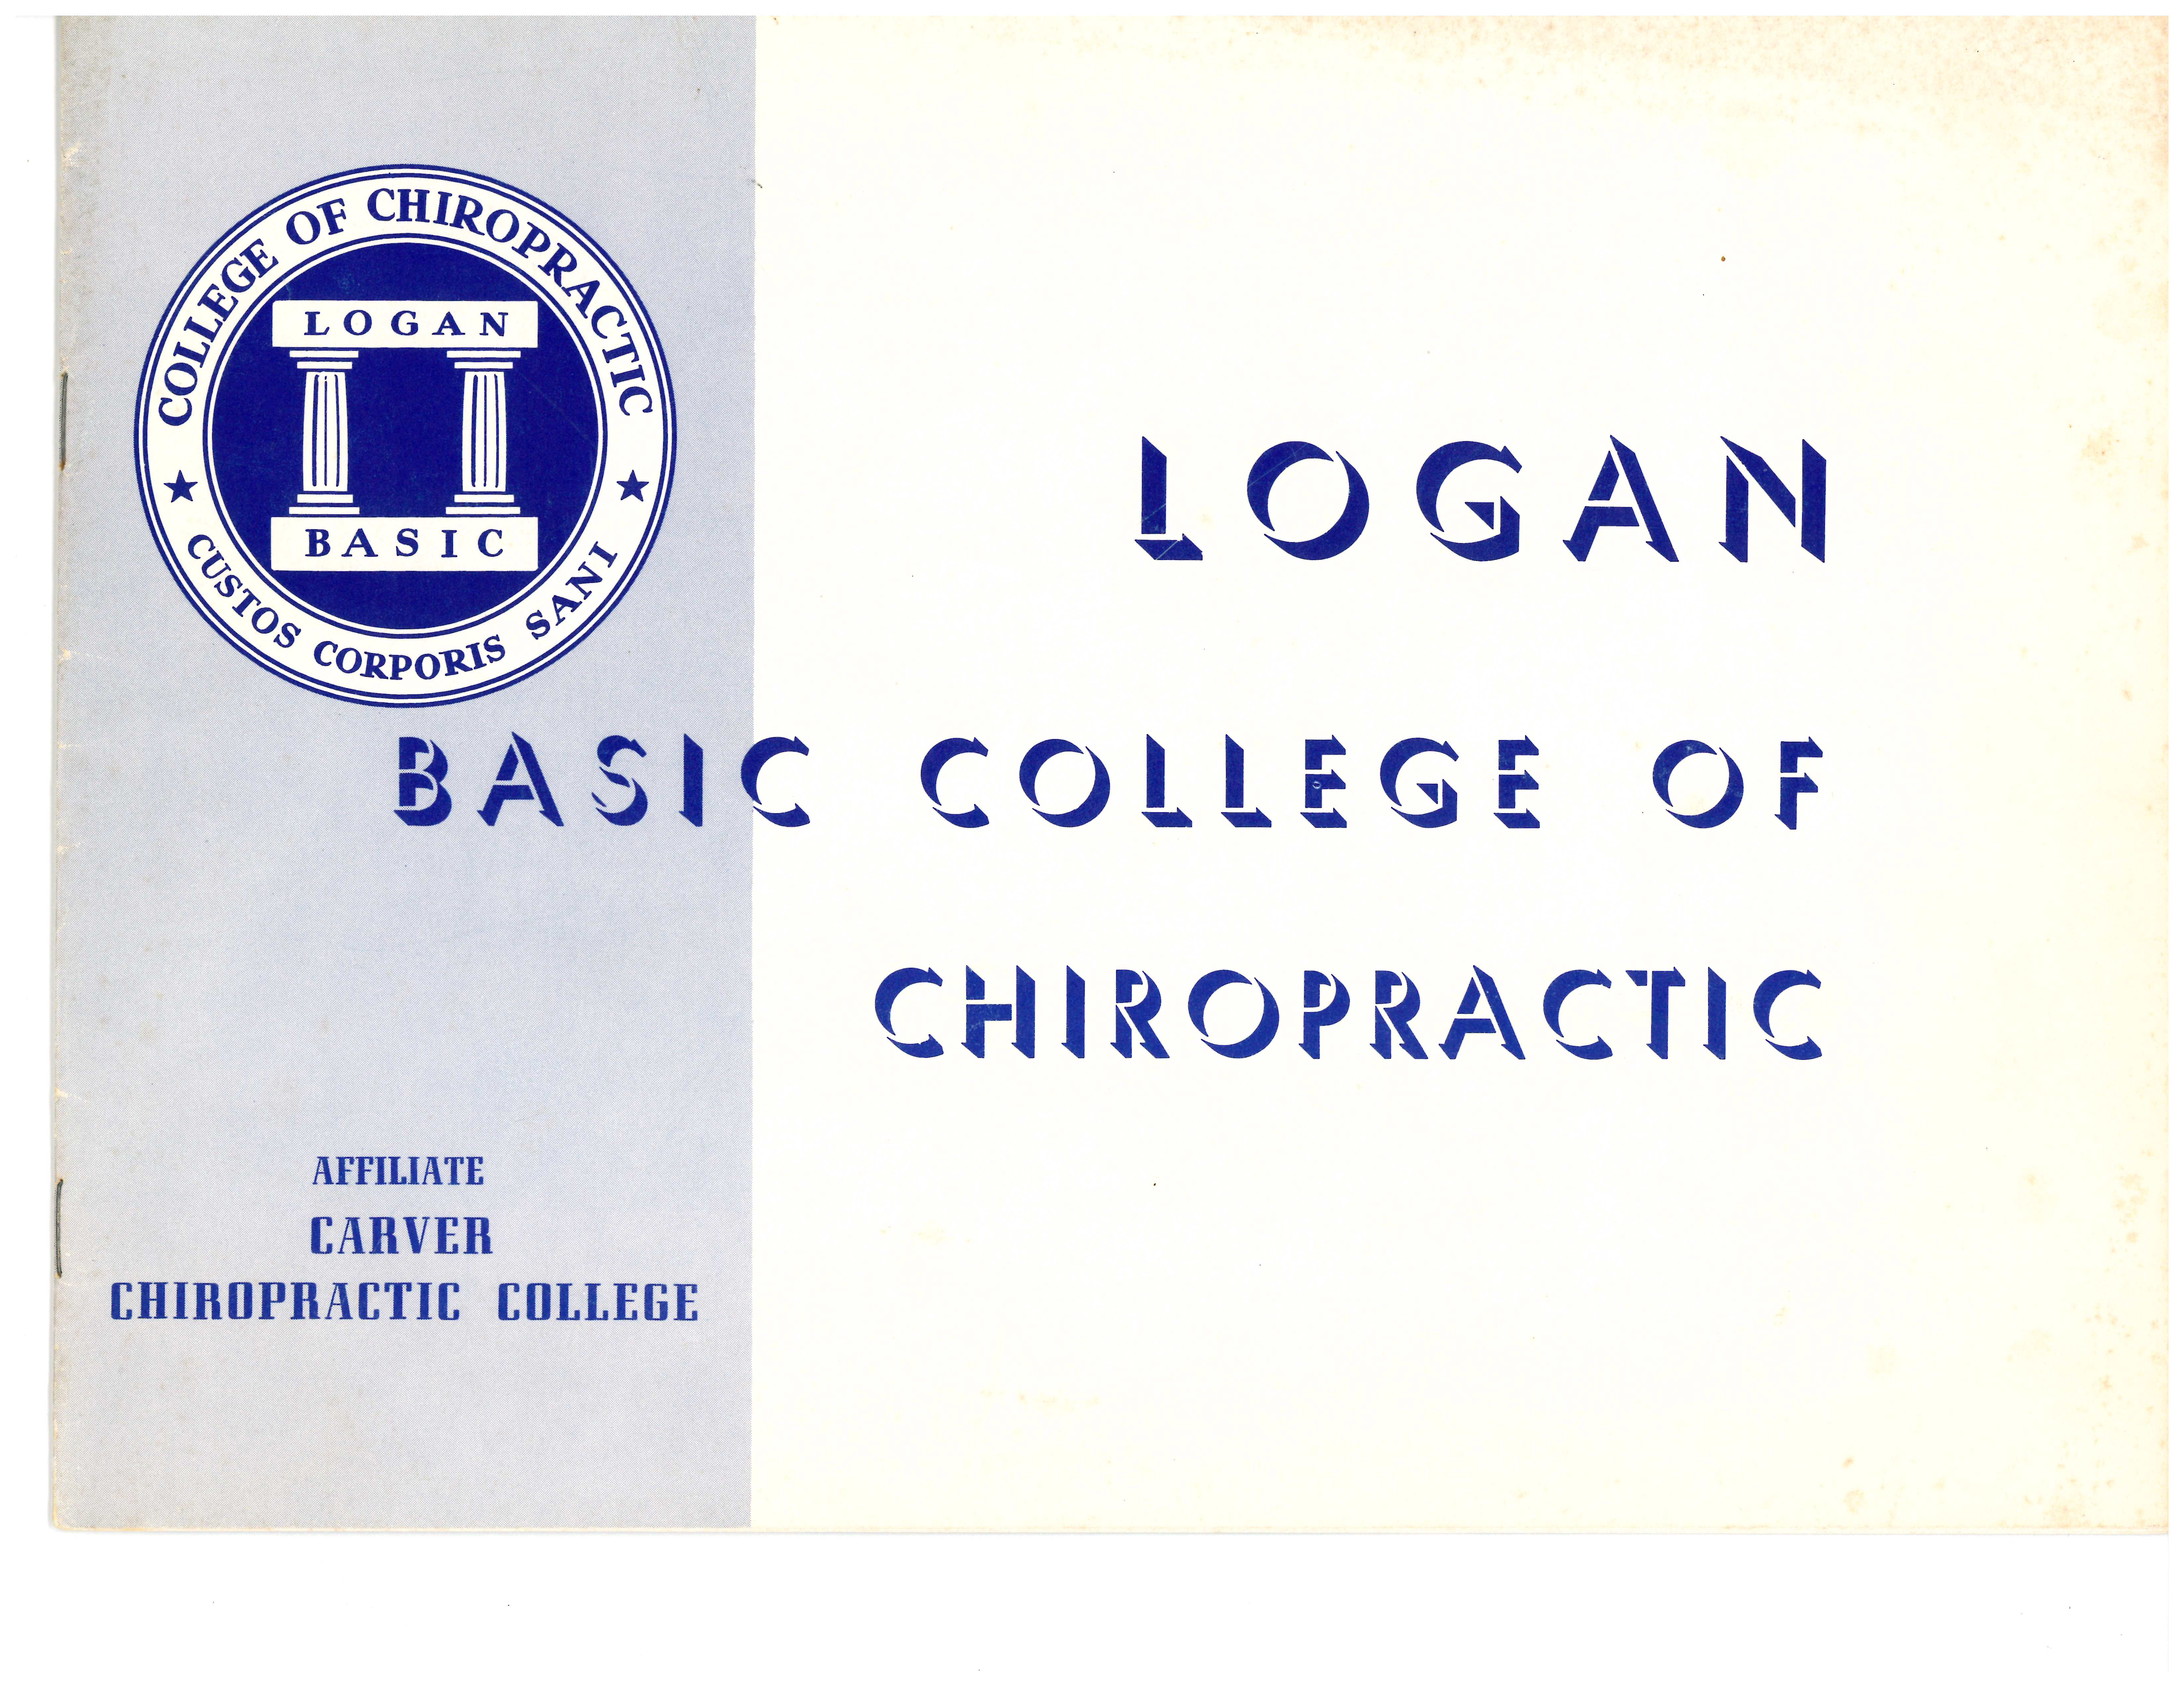 Undated brochure cover